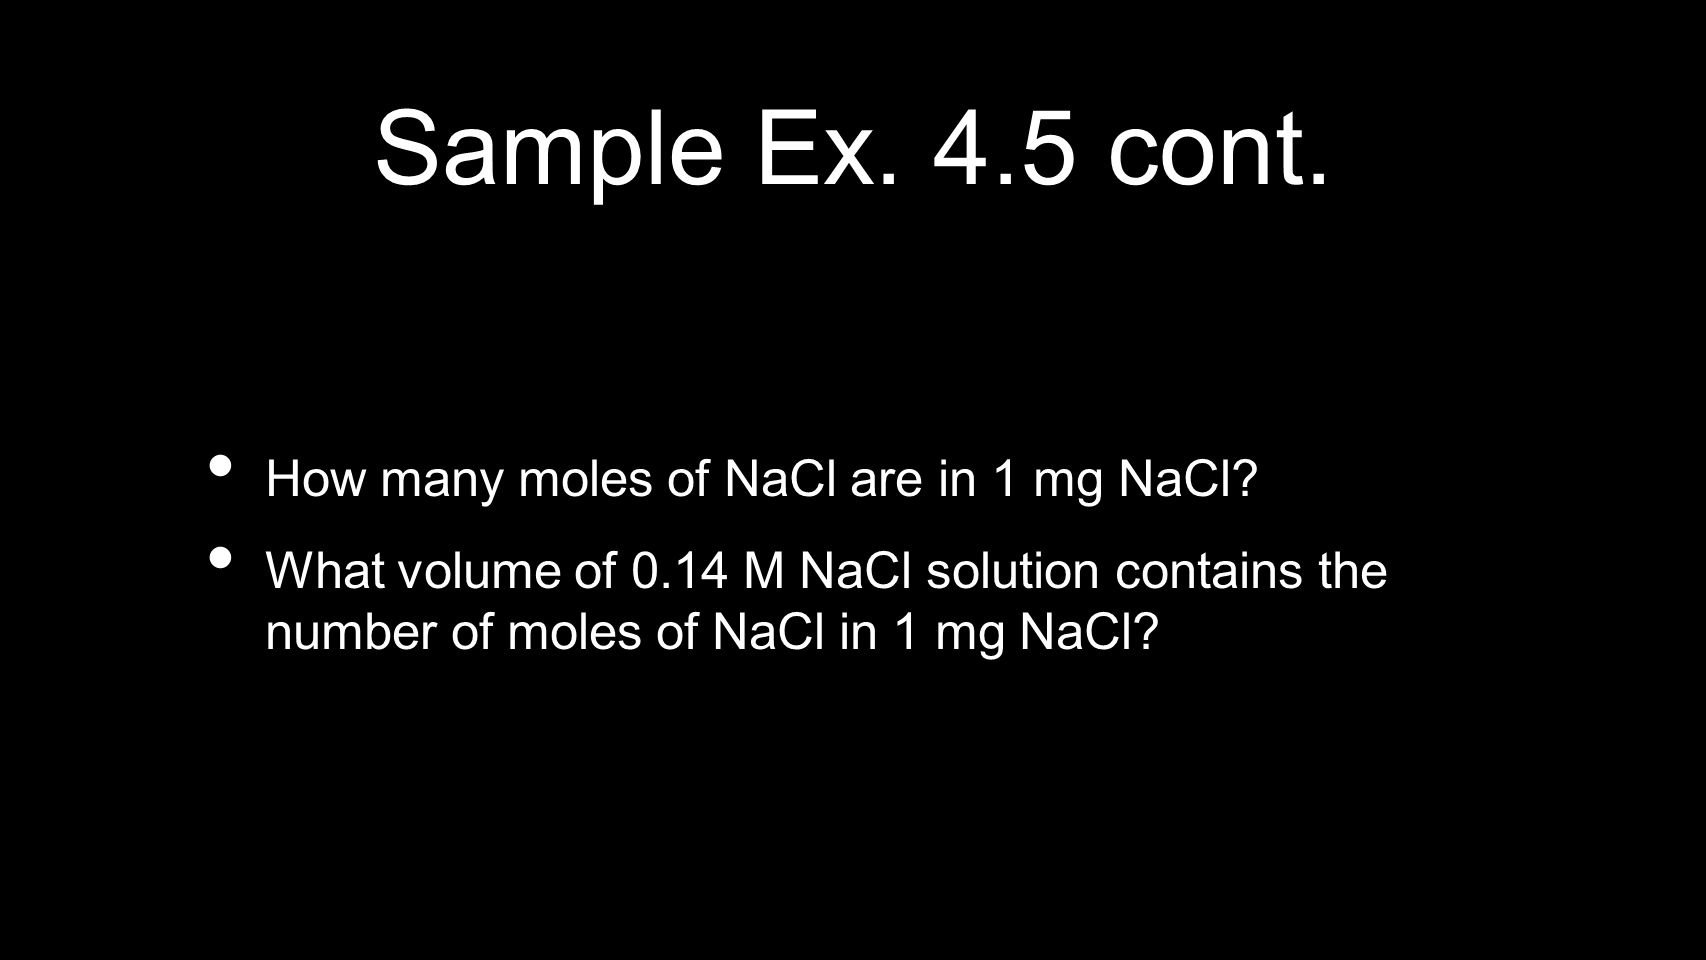 Sample Ex. 4.5 cont. How many moles of NaCl are in 1 mg NaCl